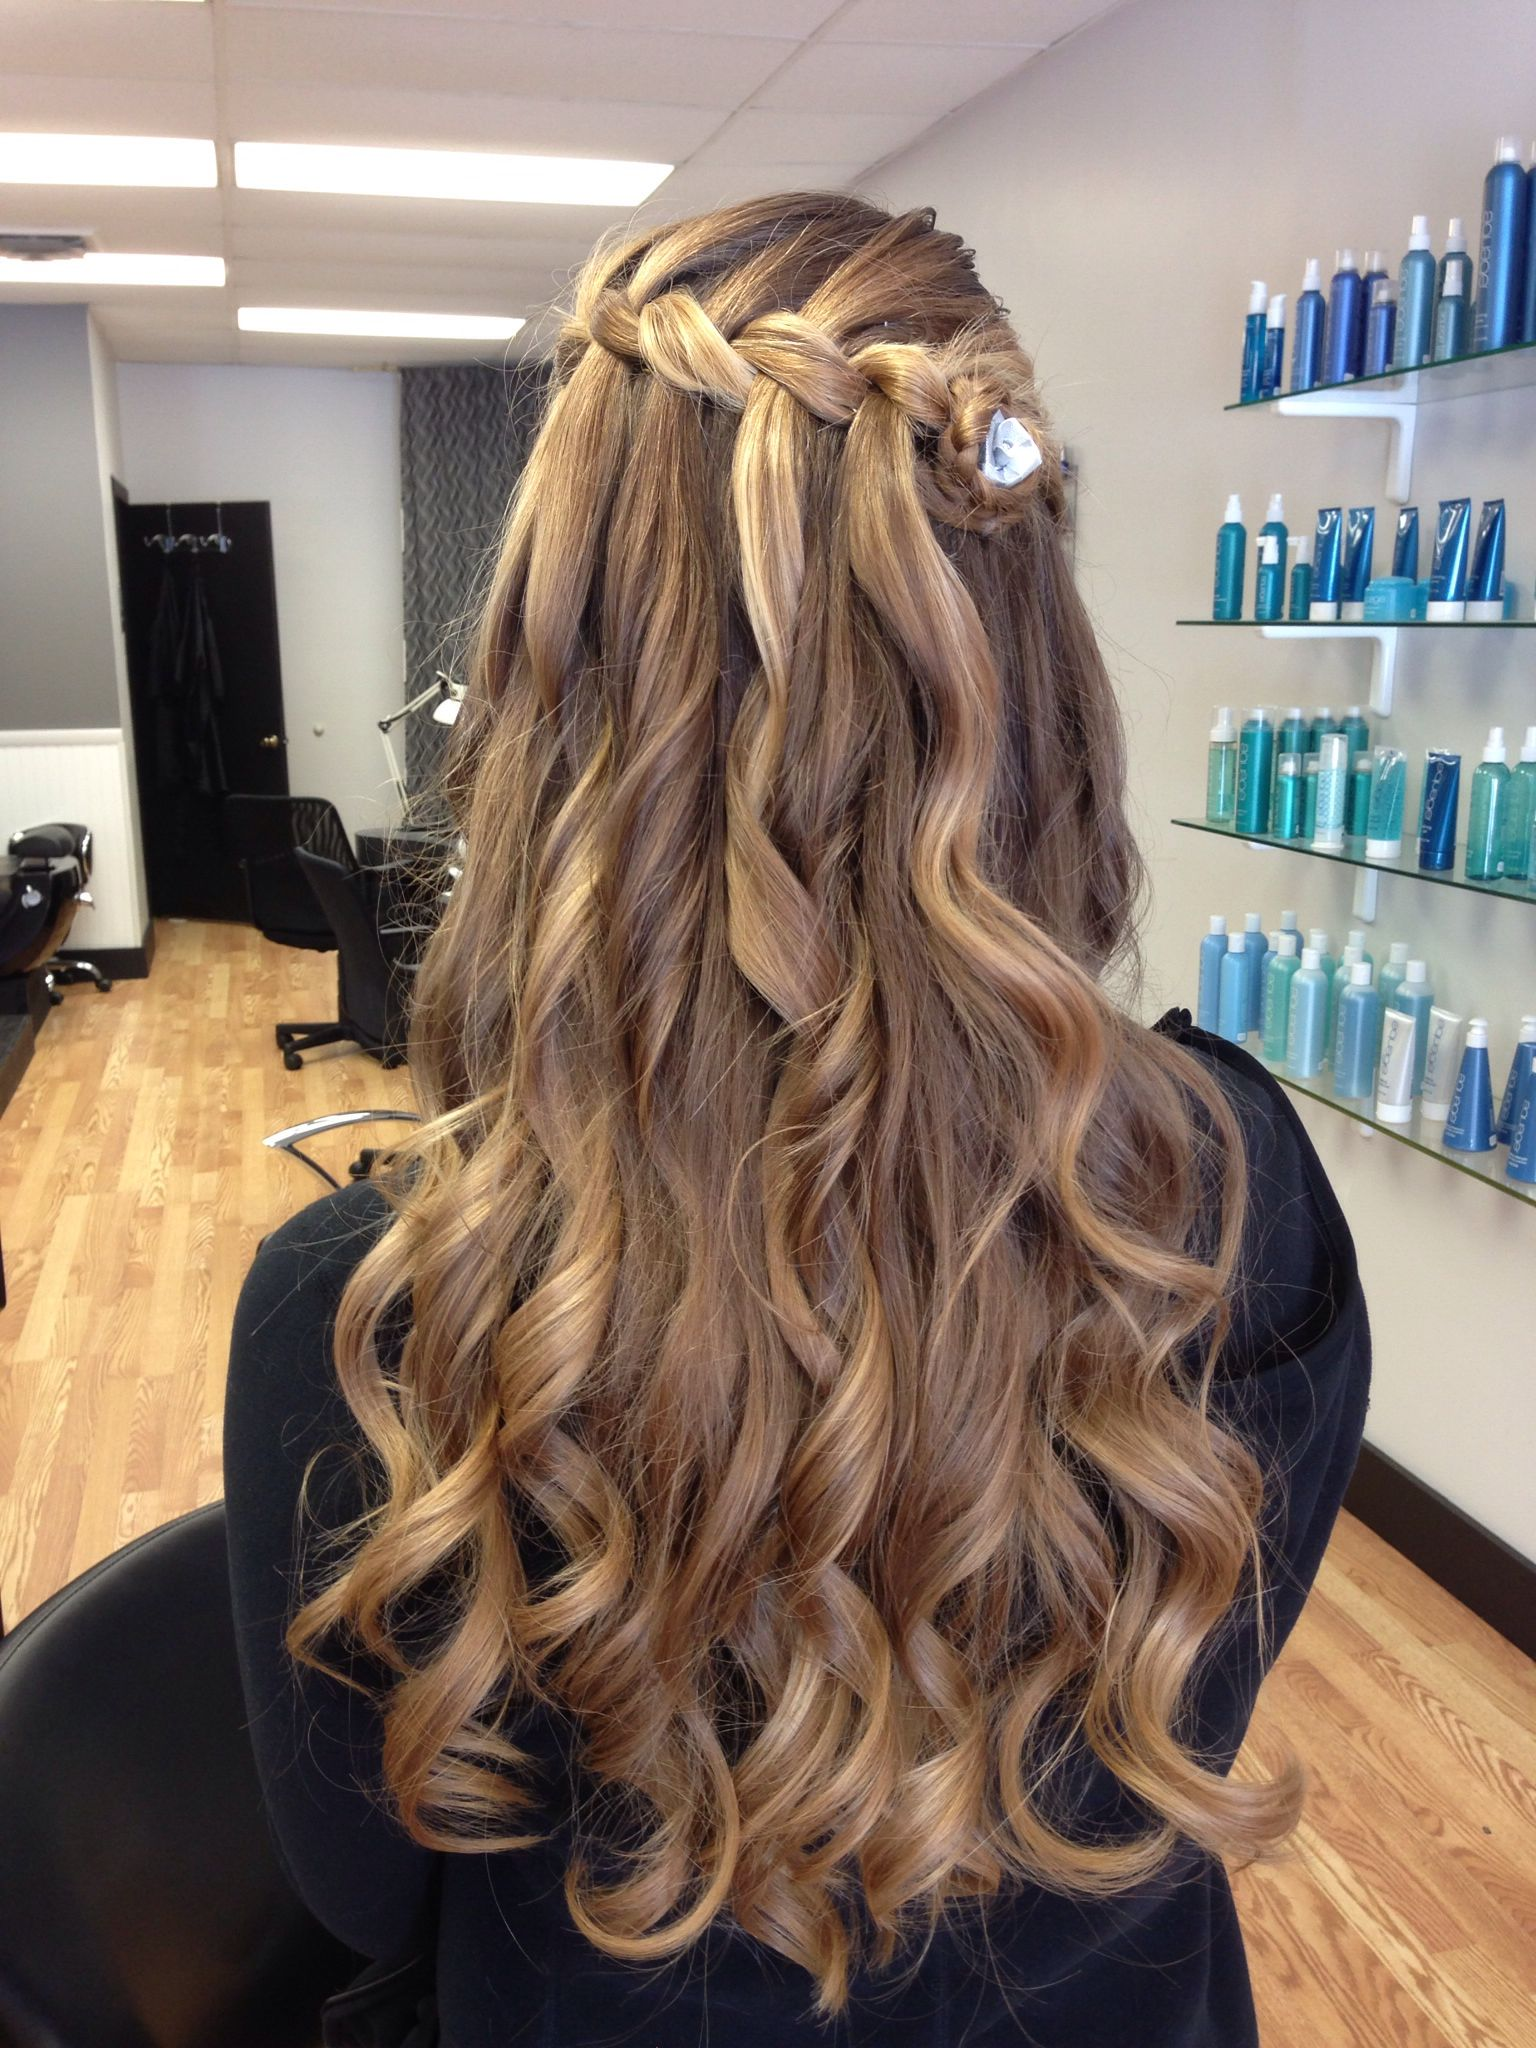 Hairstyle for long hair cute hairstyles pinterest prom